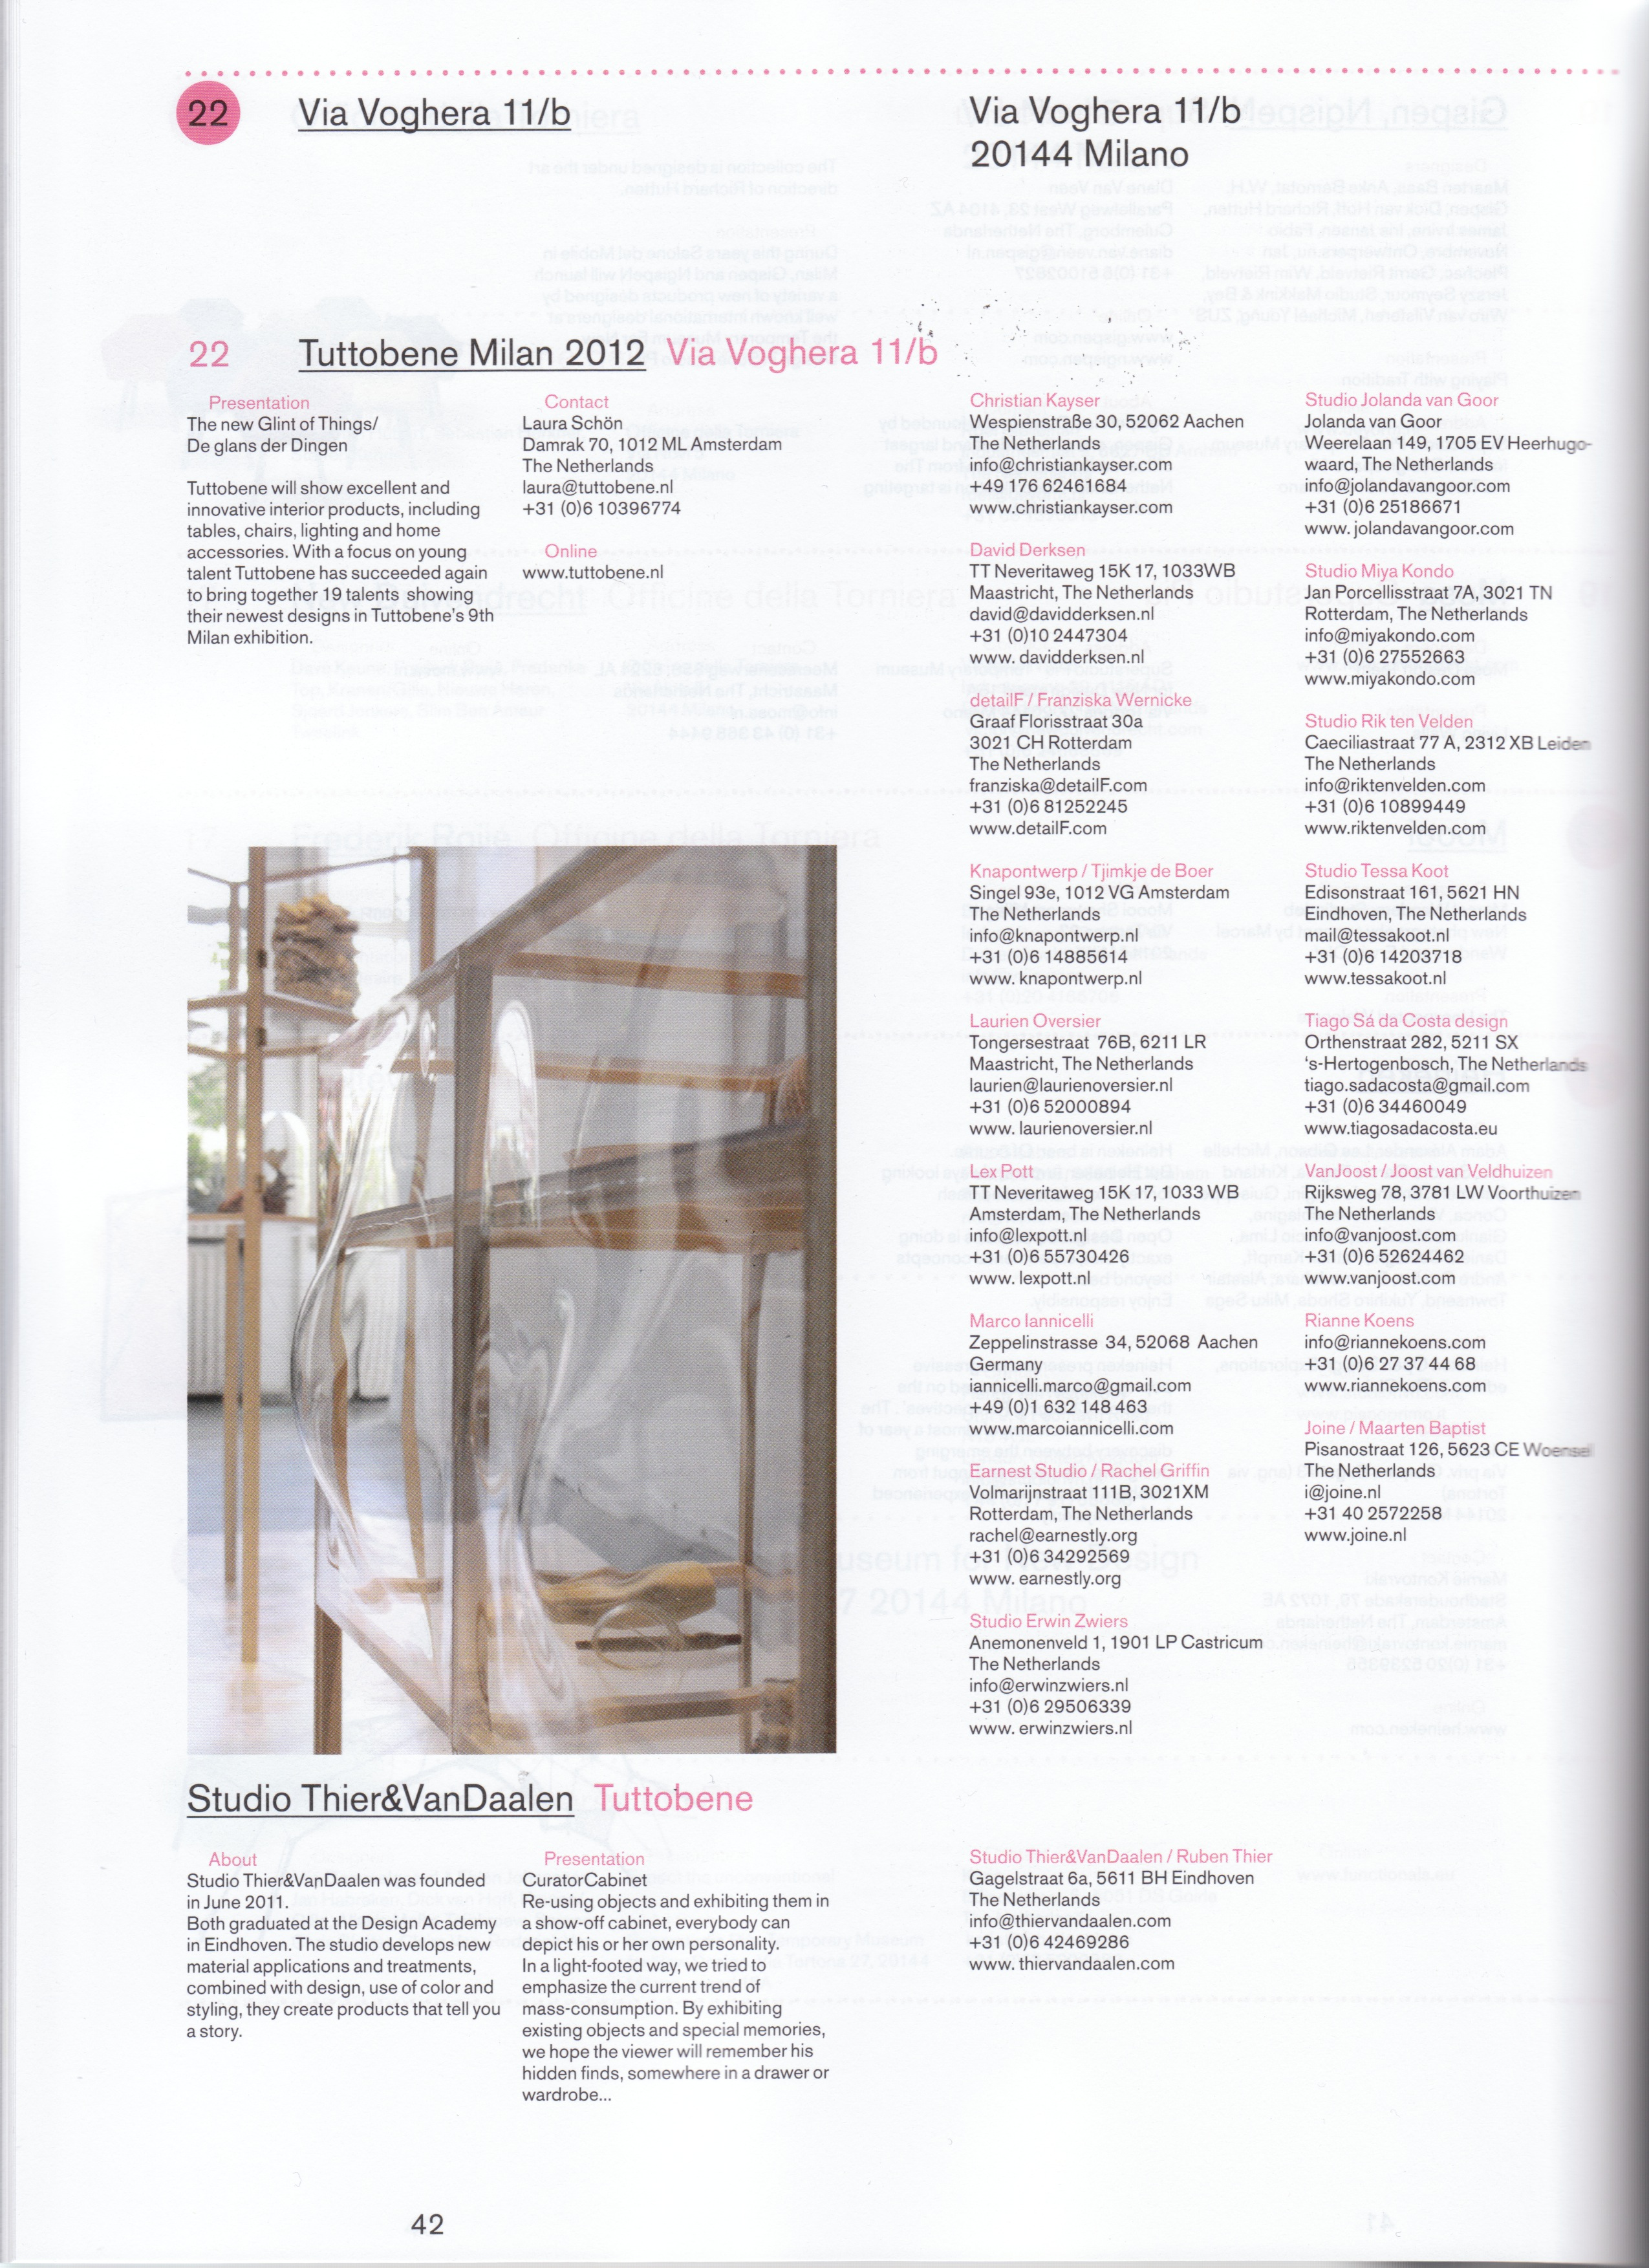 Article about Studio Thier&VanDaalen in Connecting the Dots 2012